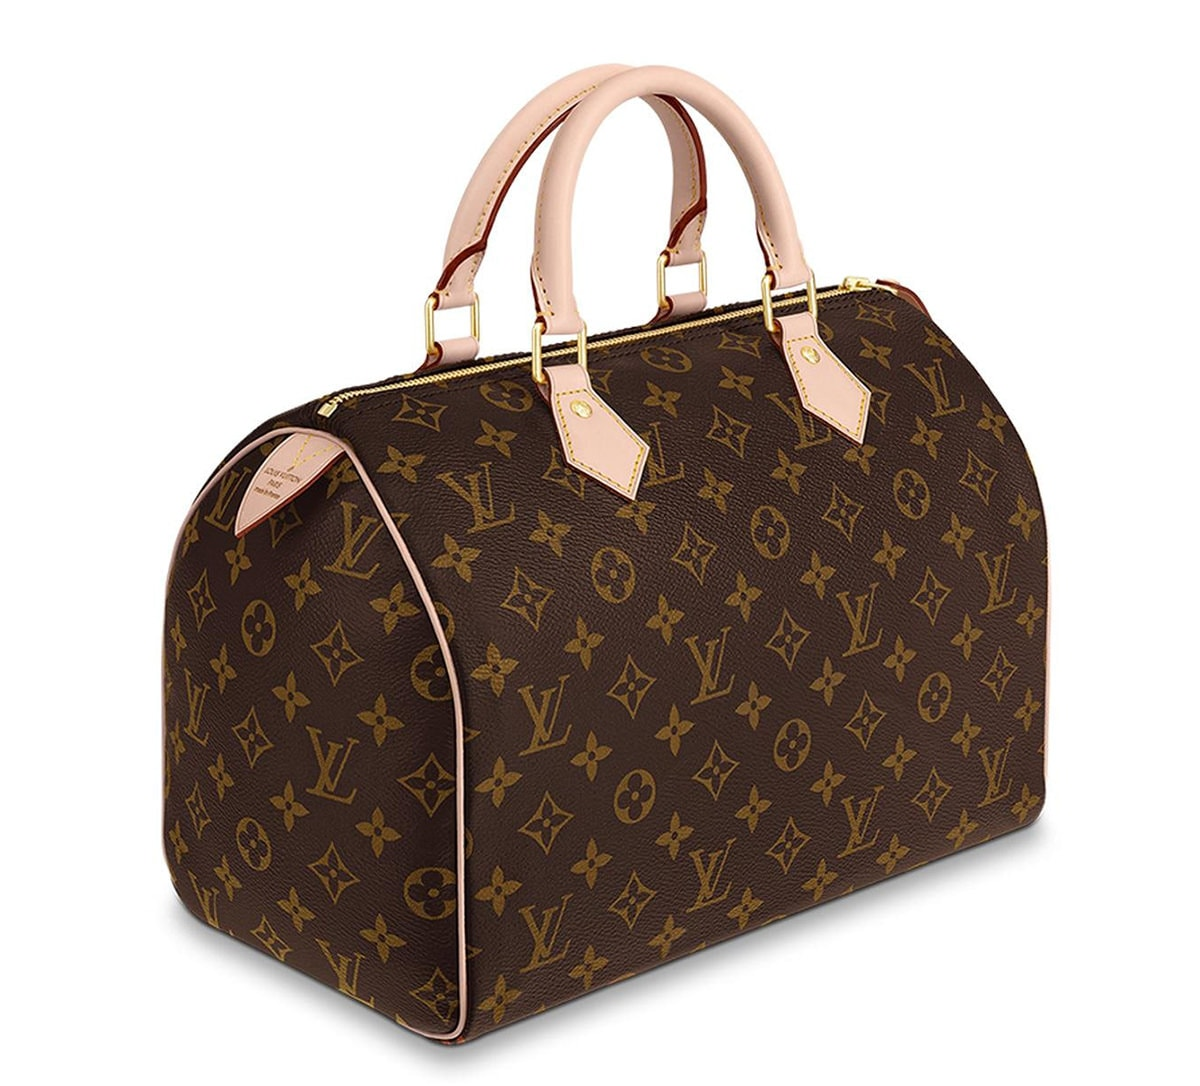 Best International Louis Vuitton Speedy Price: $935 in France